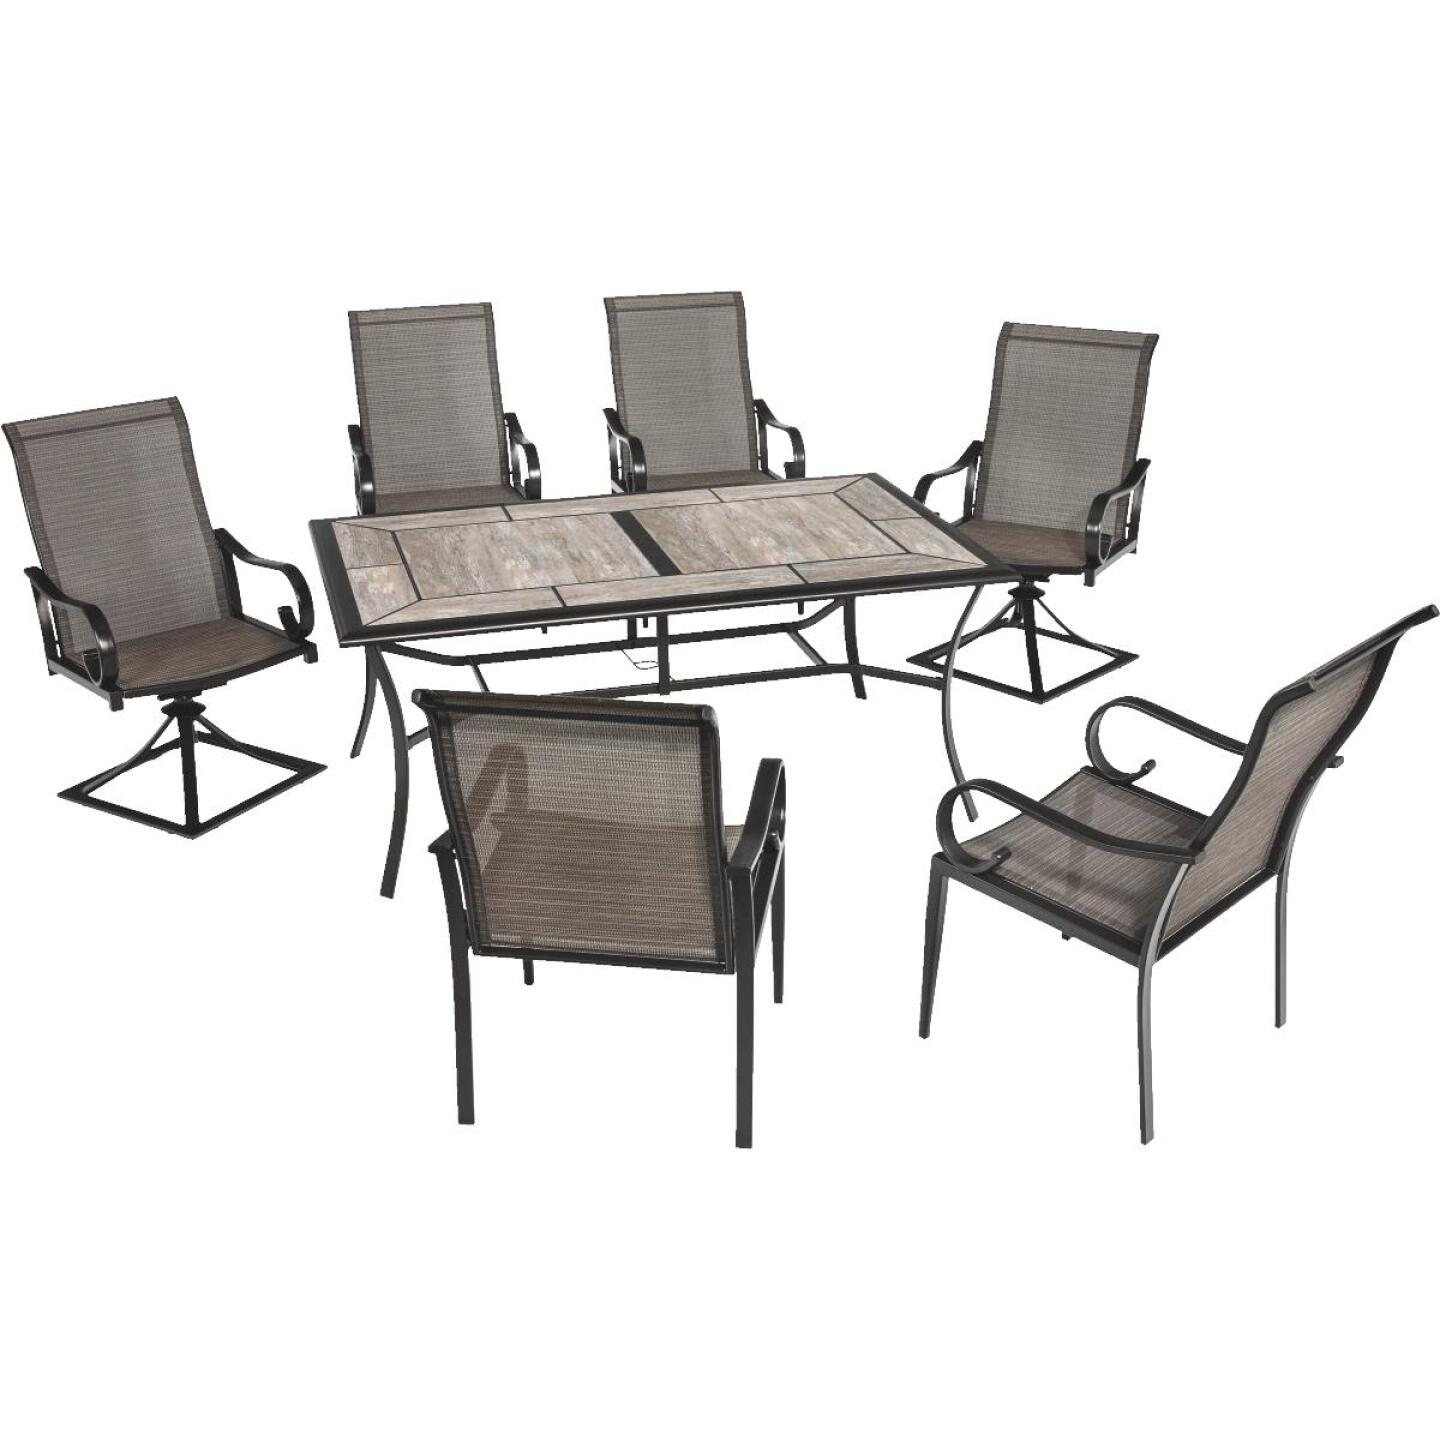 Outdoor Expressions Berkshire 7-Piece Dining Set Image 66